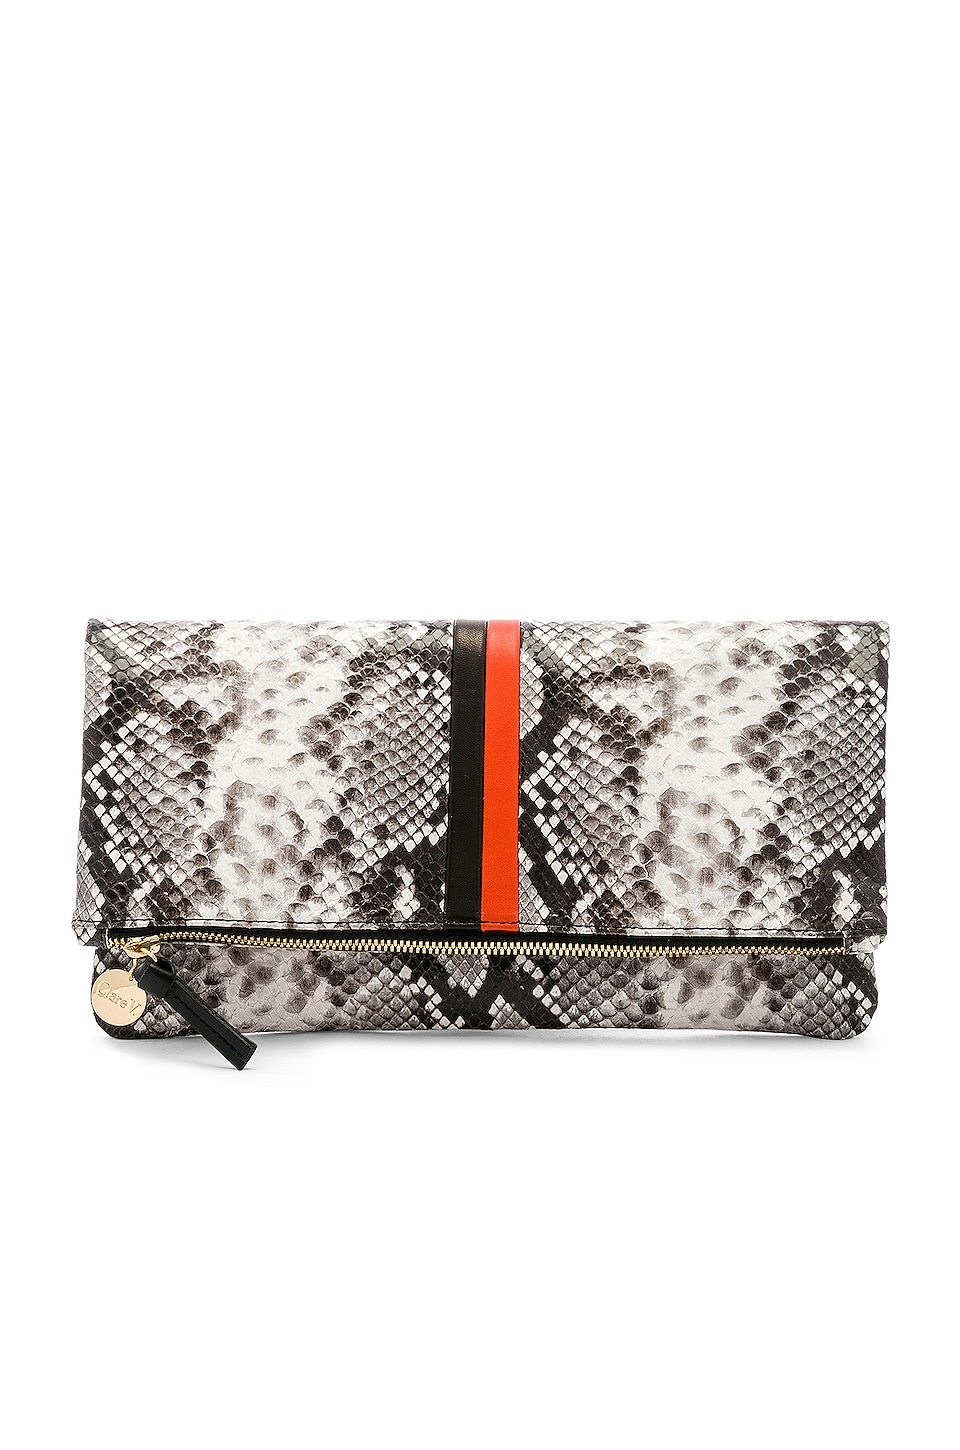 Clare V. Foldover Clutch in Python, Black & Poppy